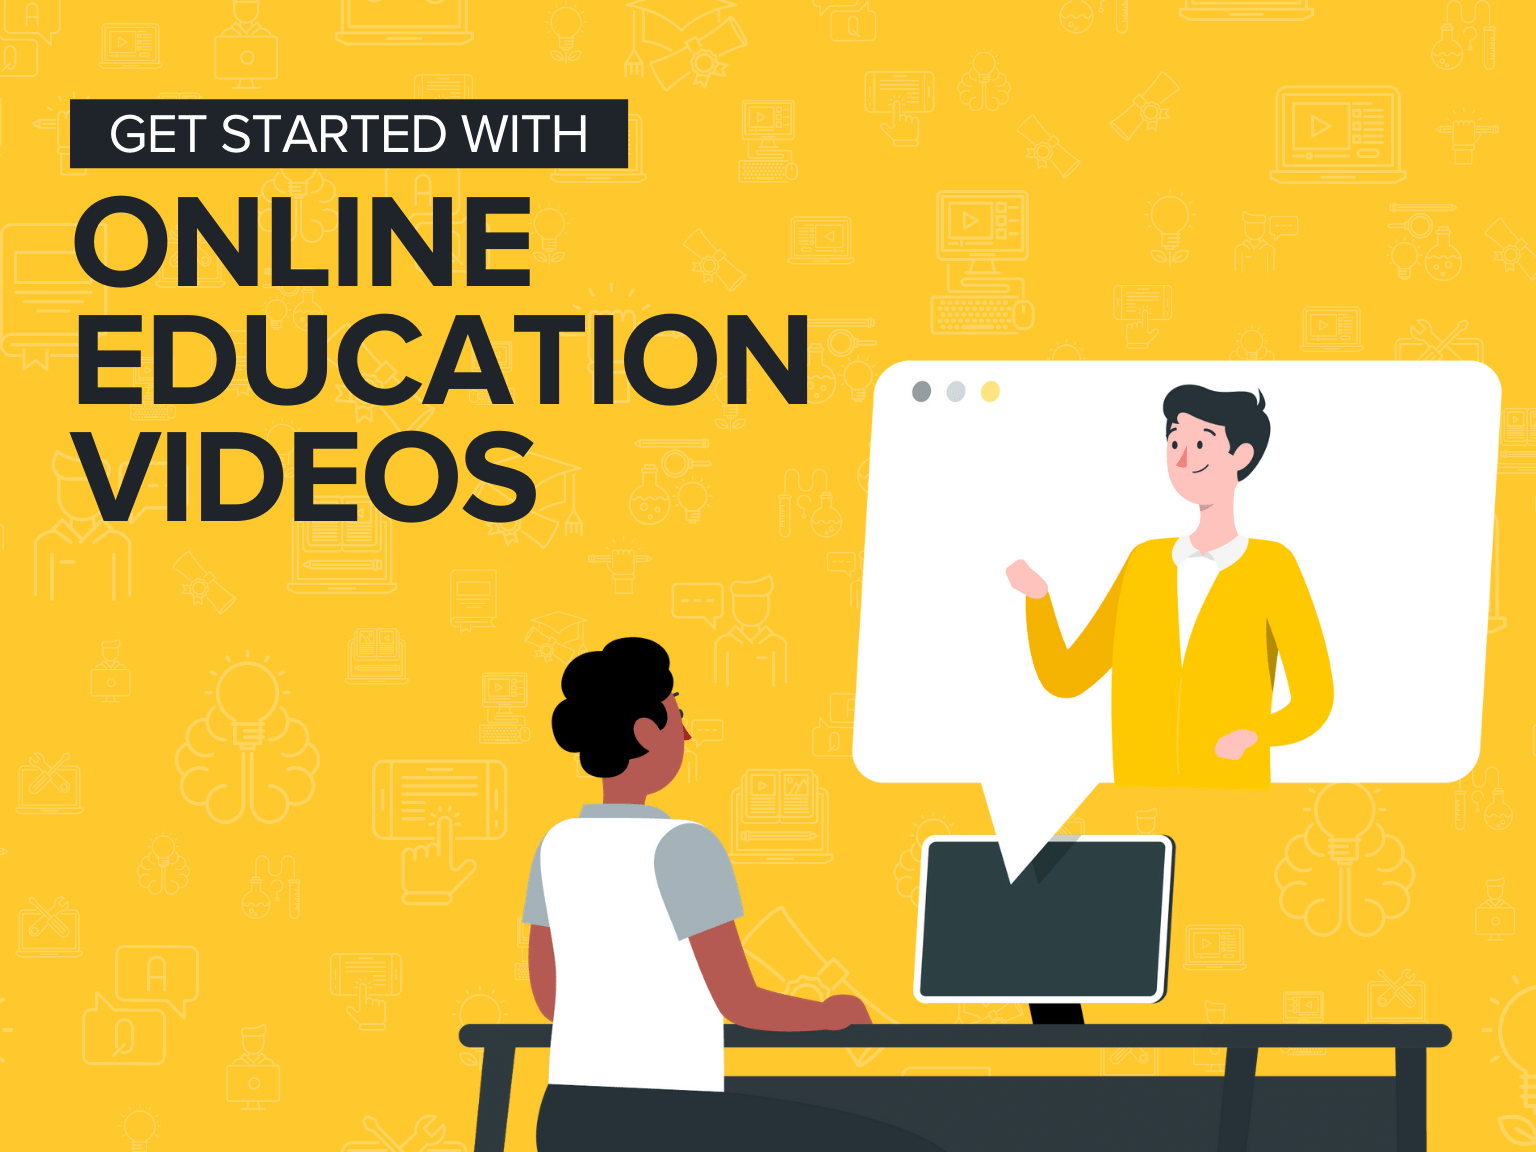 Get Started with Online Education Videos